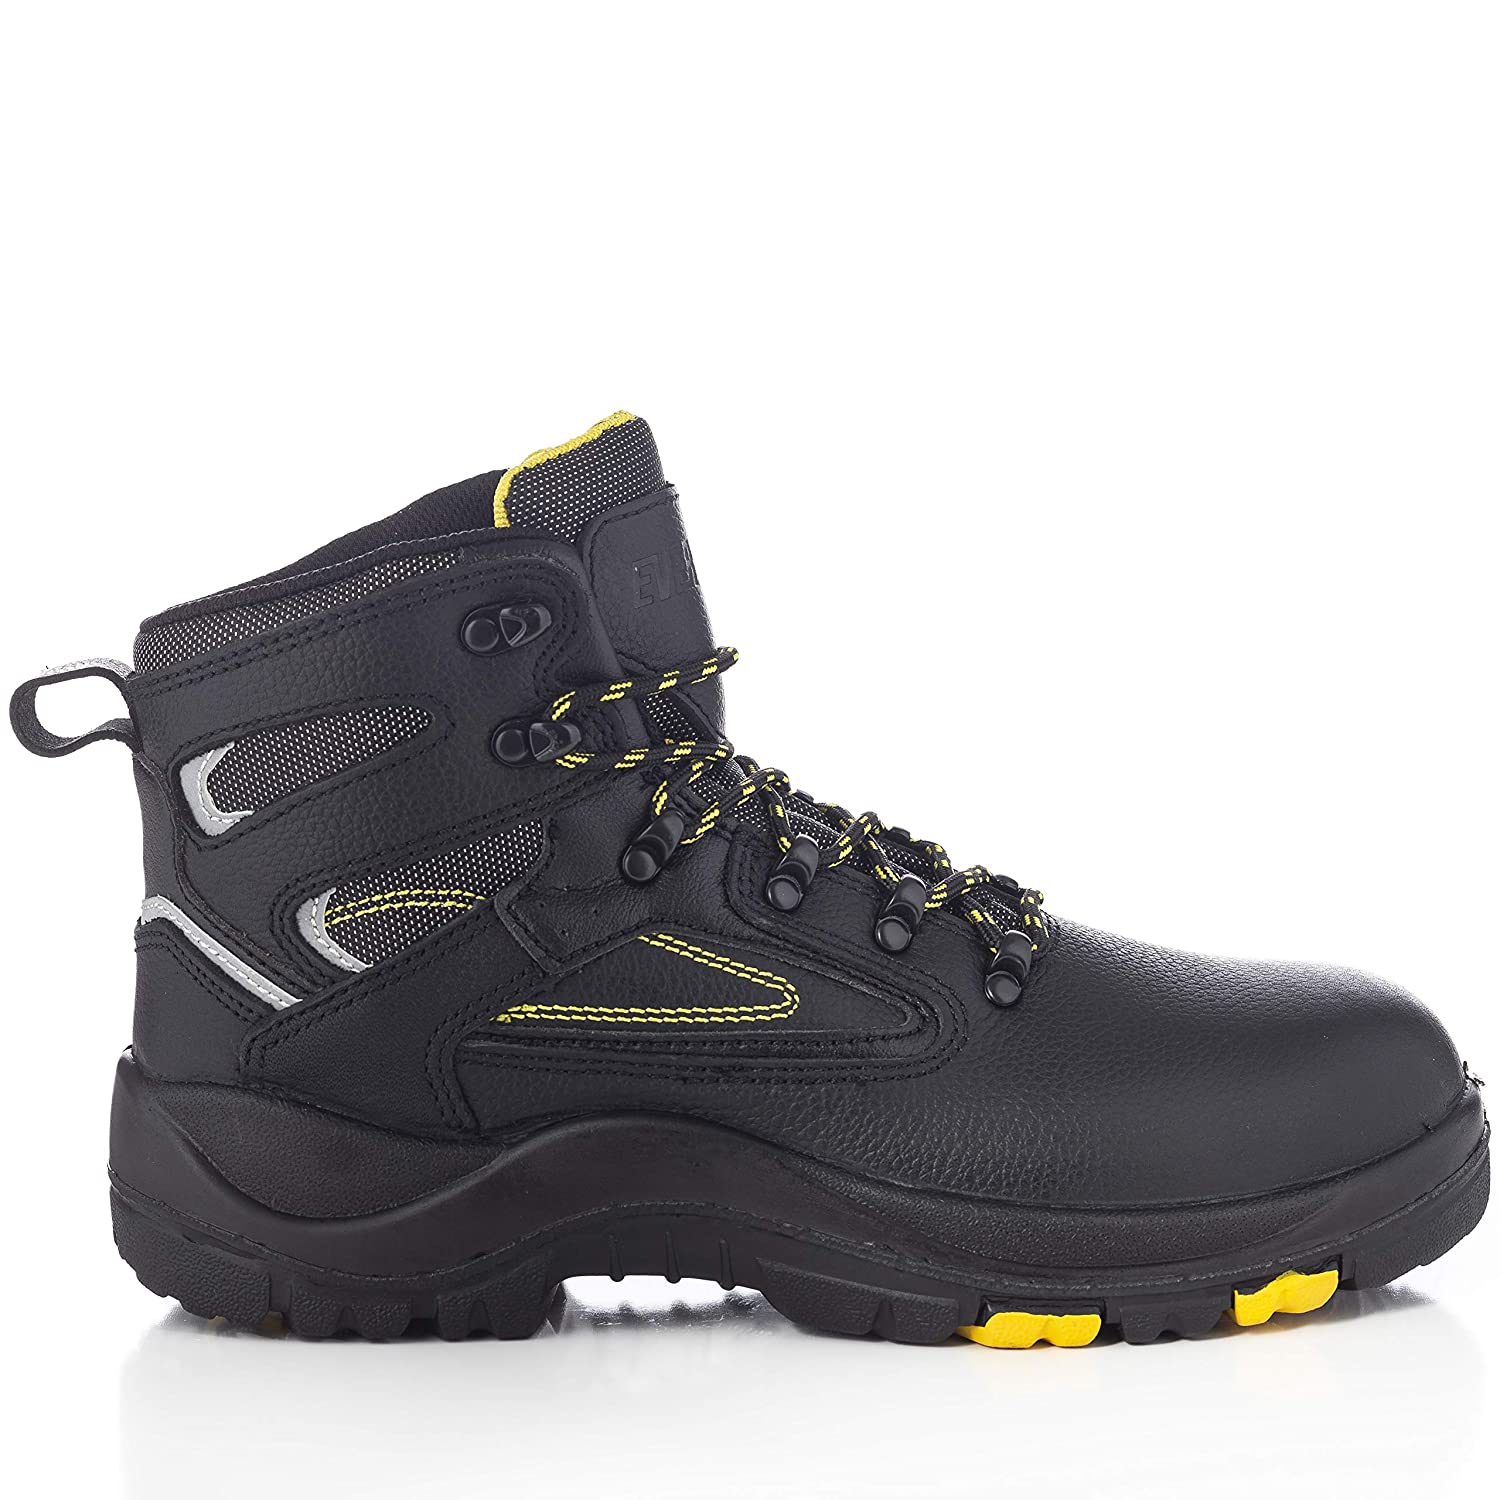 EVER BOOTS Protector Mens Steel Toe Industrial Work Boots Safety Shoes Electrical Hazard Protection